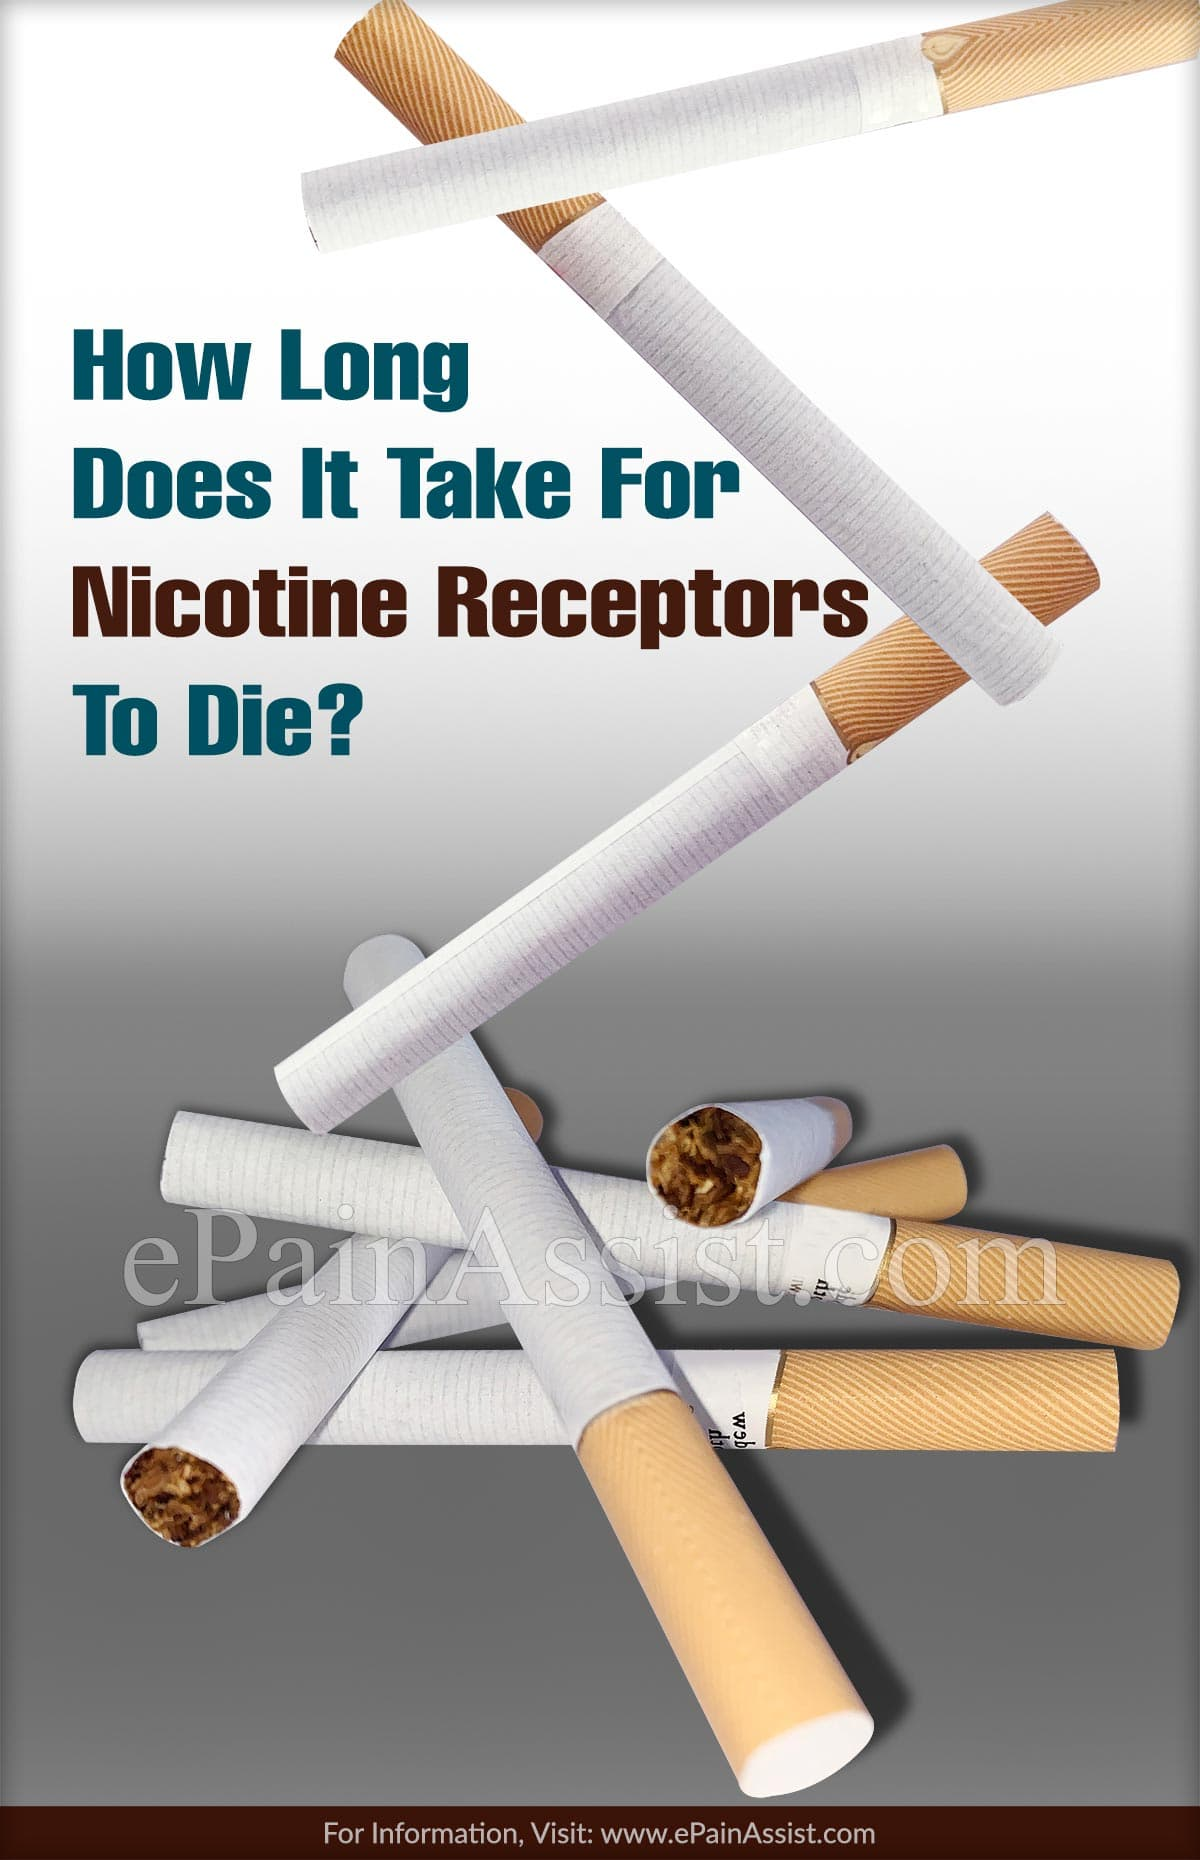 How Long Does It Take For Nicotine Receptors To Die?